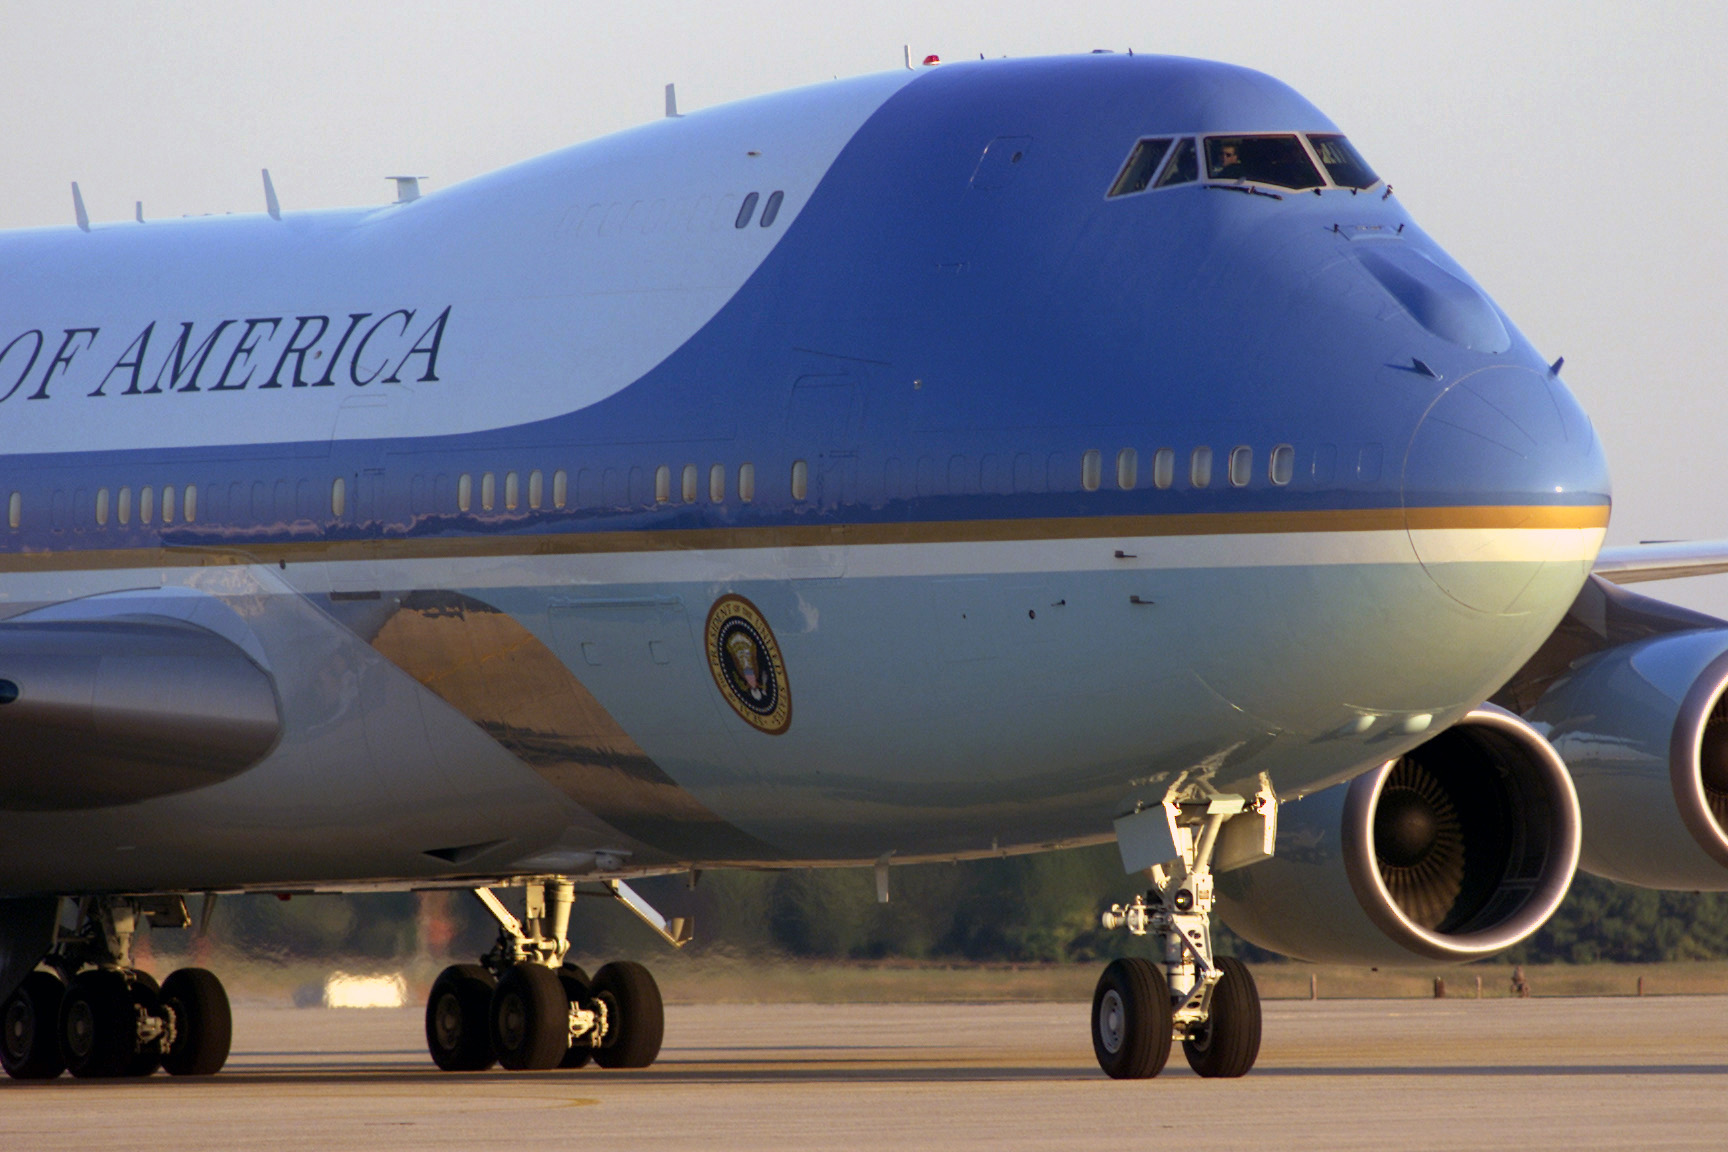 Betty ong s 9 11 call from flight 11 youtube - Air Force One After Landing At Andrews Air Force Base In Maryland